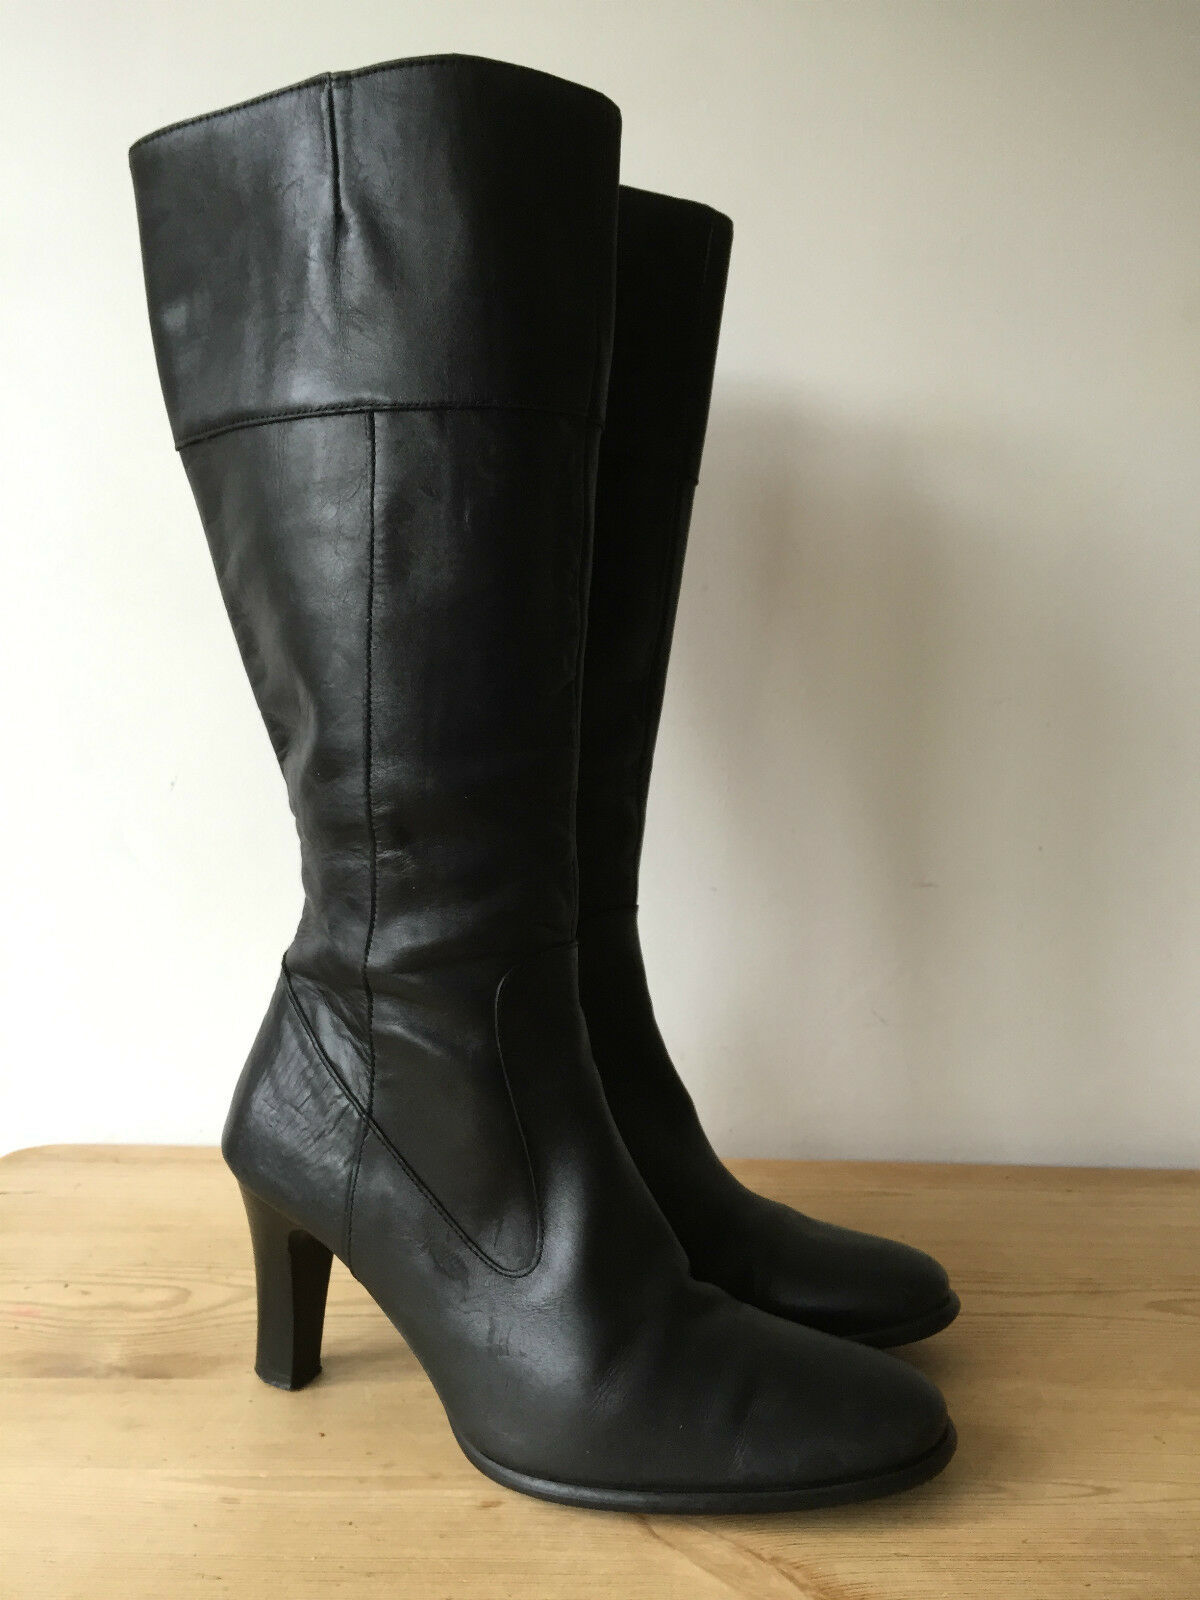 BUCKLES & BOWES LADIES BLACK LEATHER KNEE HIGH BOOTS UK5